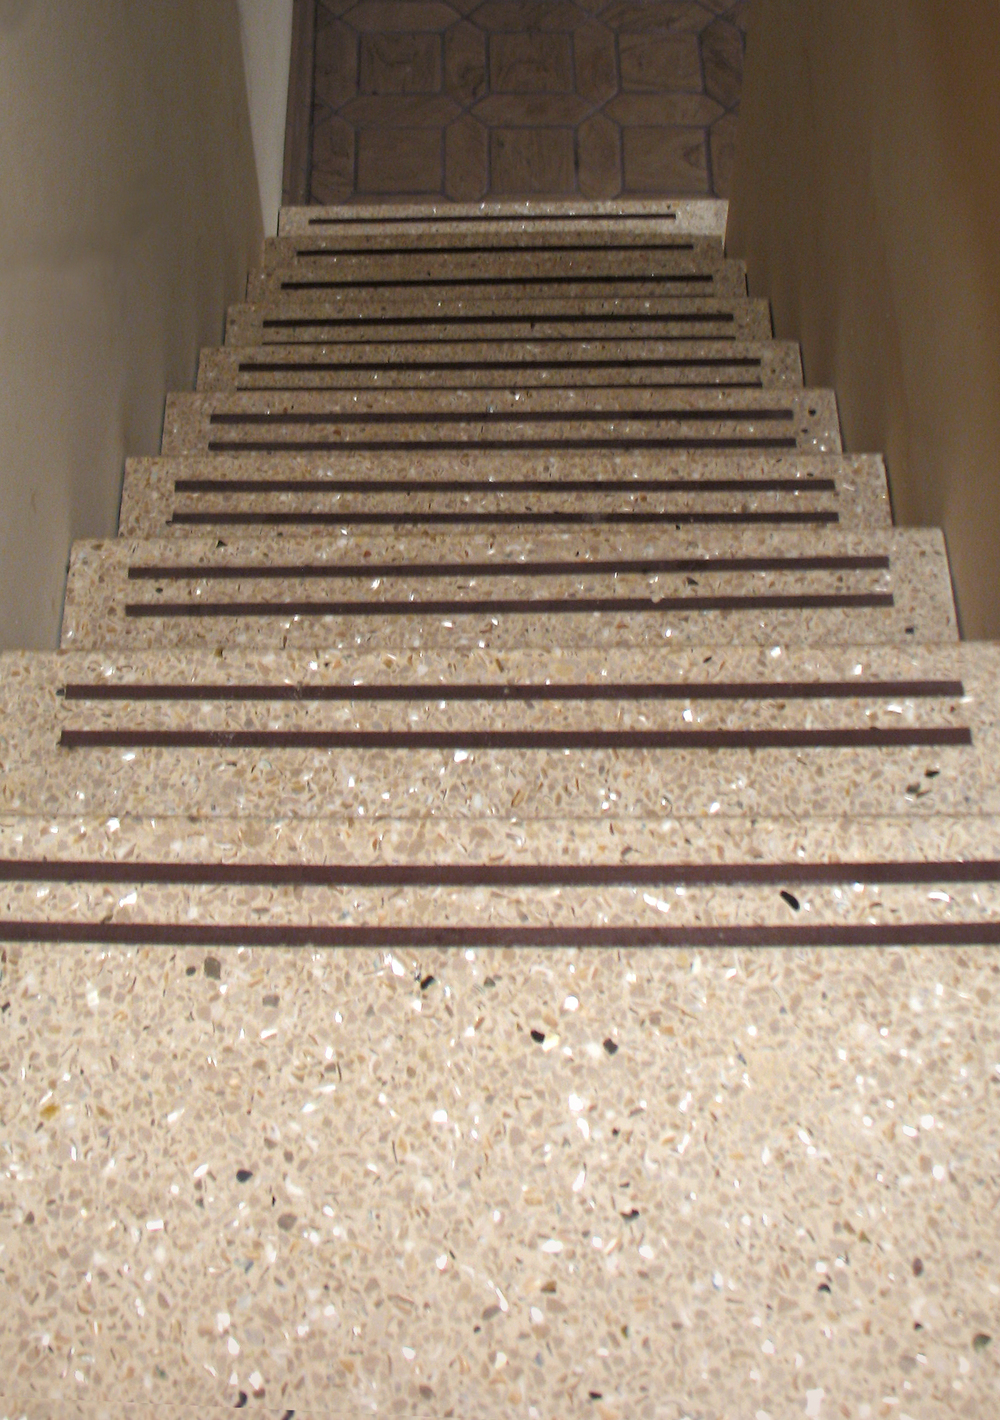 Stairs_Zoomout2.jpg